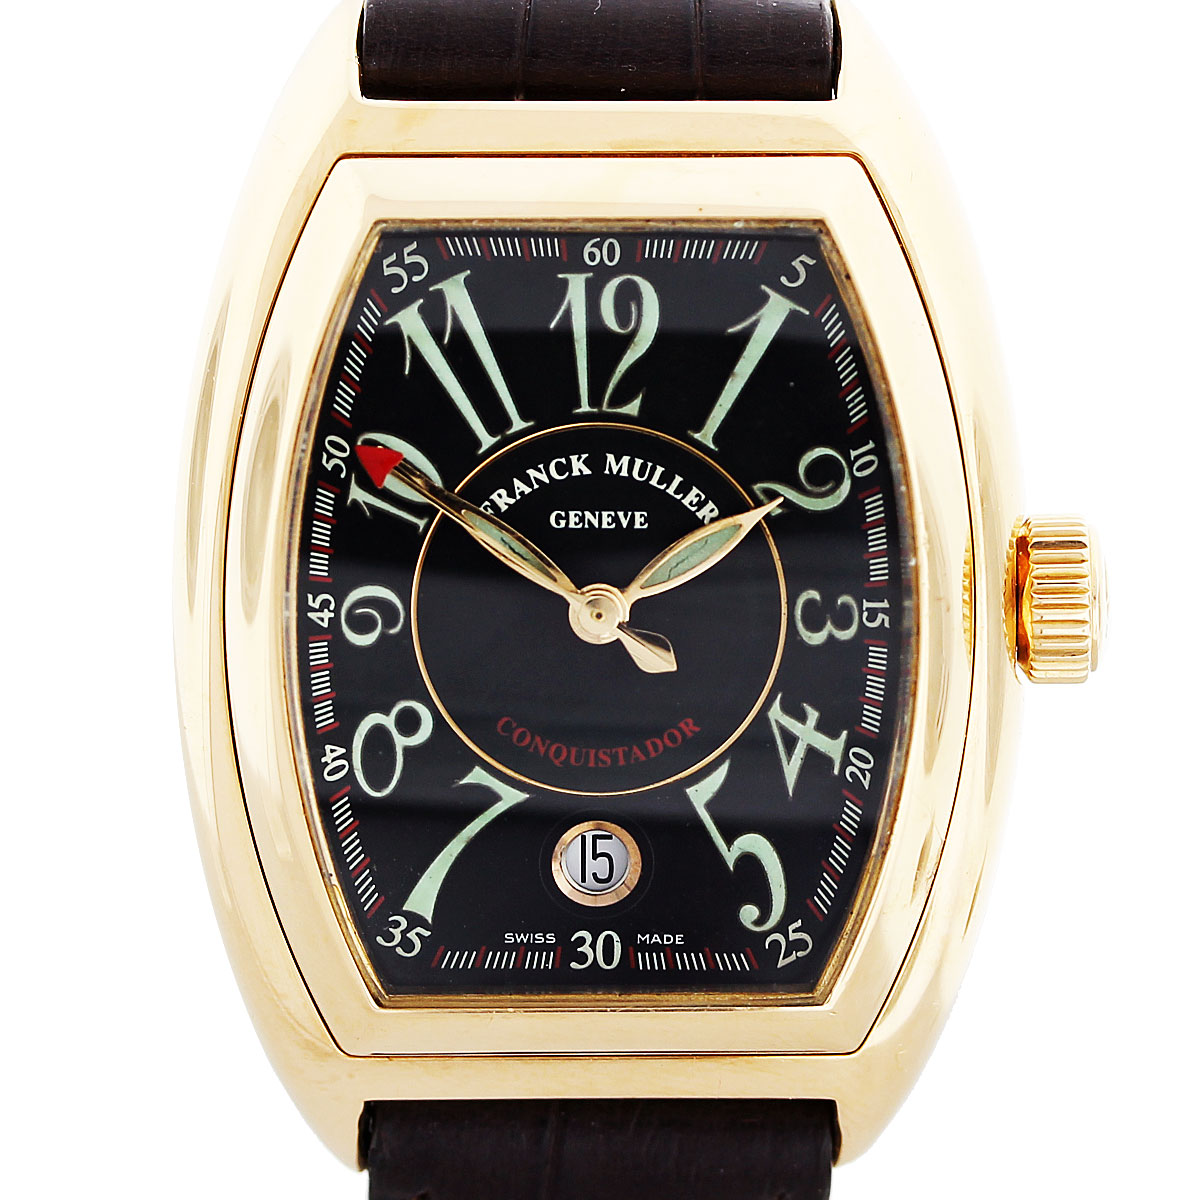 Franck muller conquistador 8001 18k rose gold mens watch for Franck muller watches